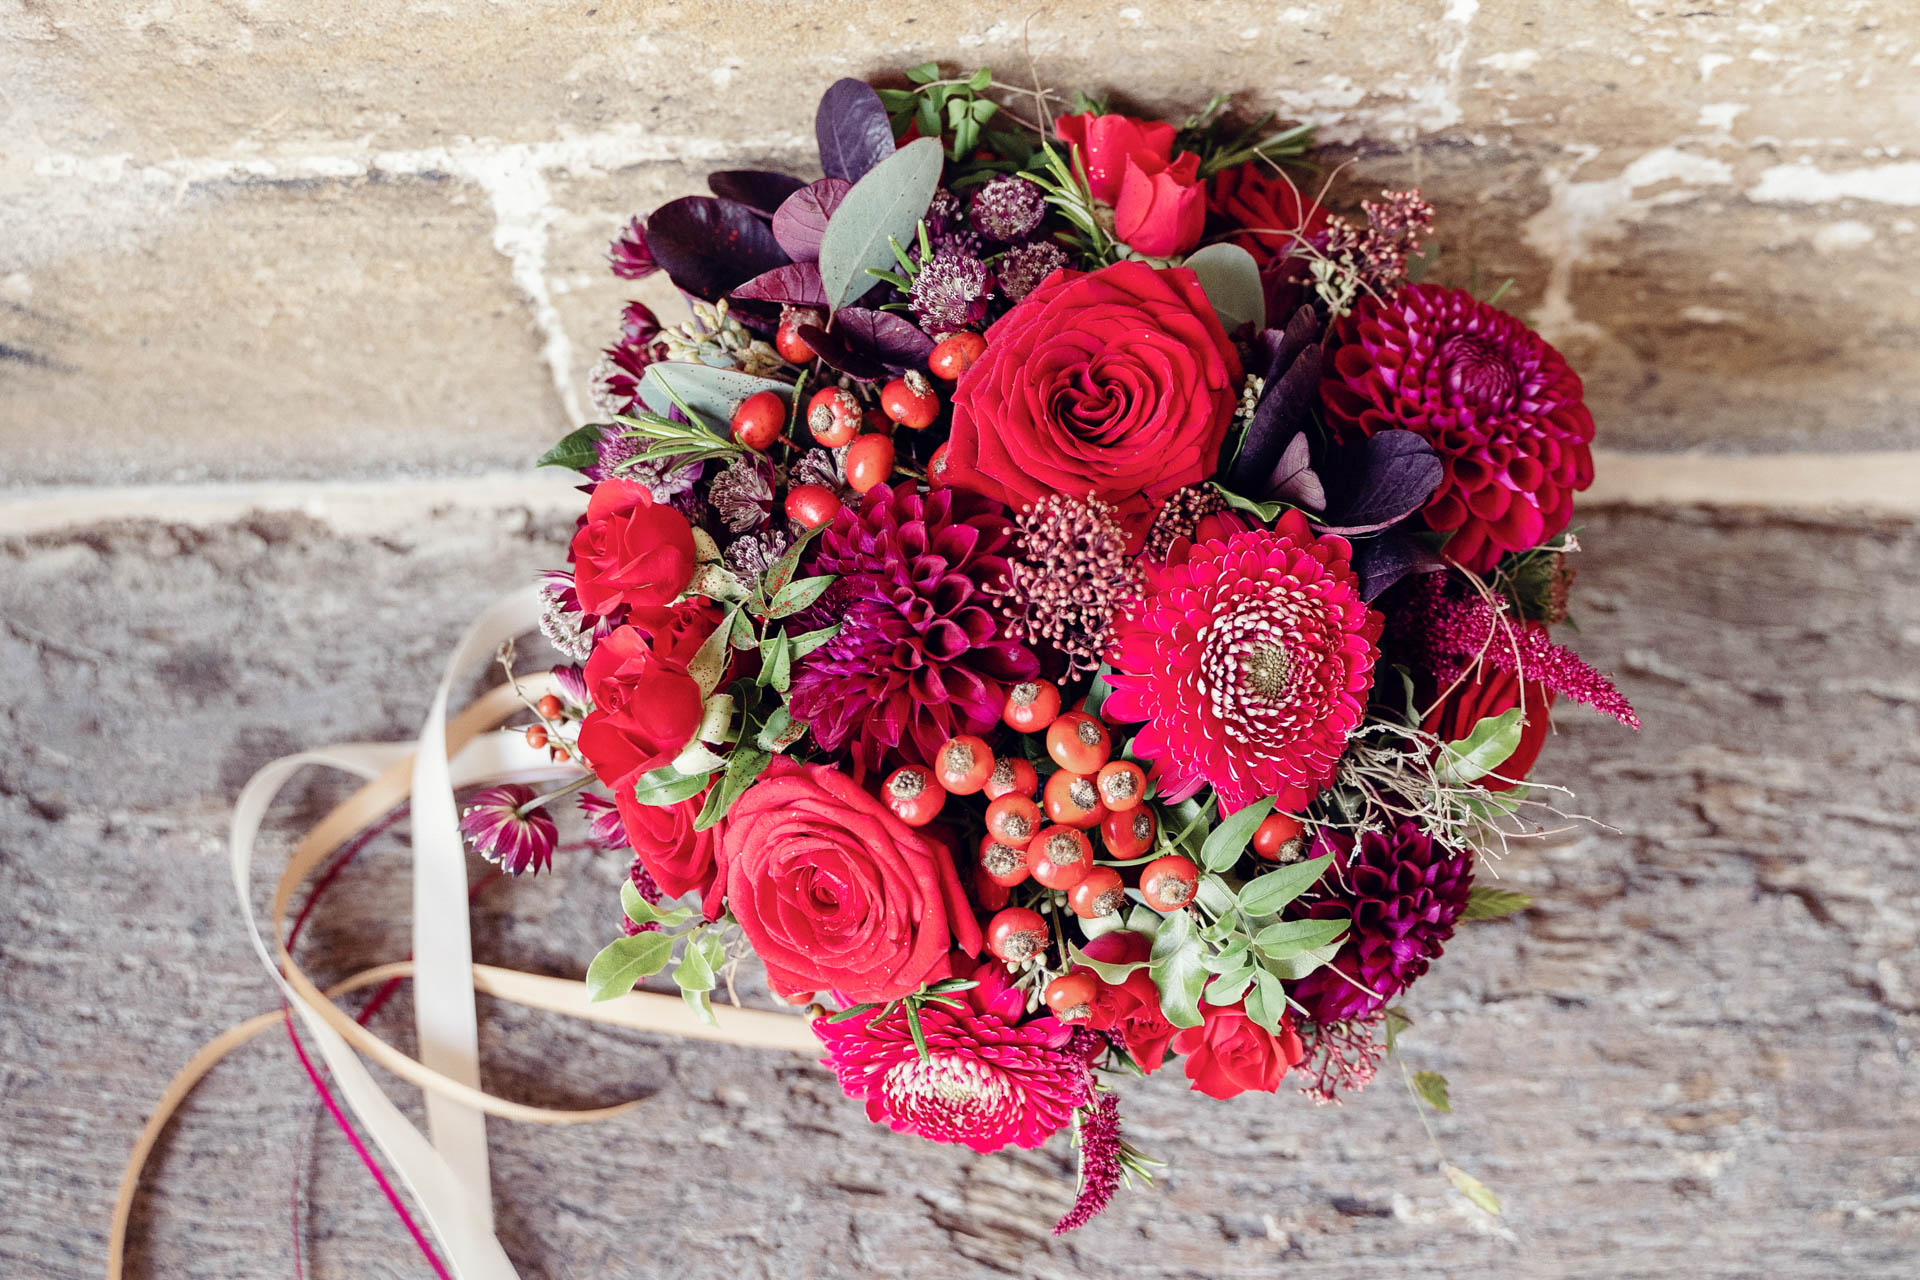 Lizzy's deep red bouquet oozes passion.